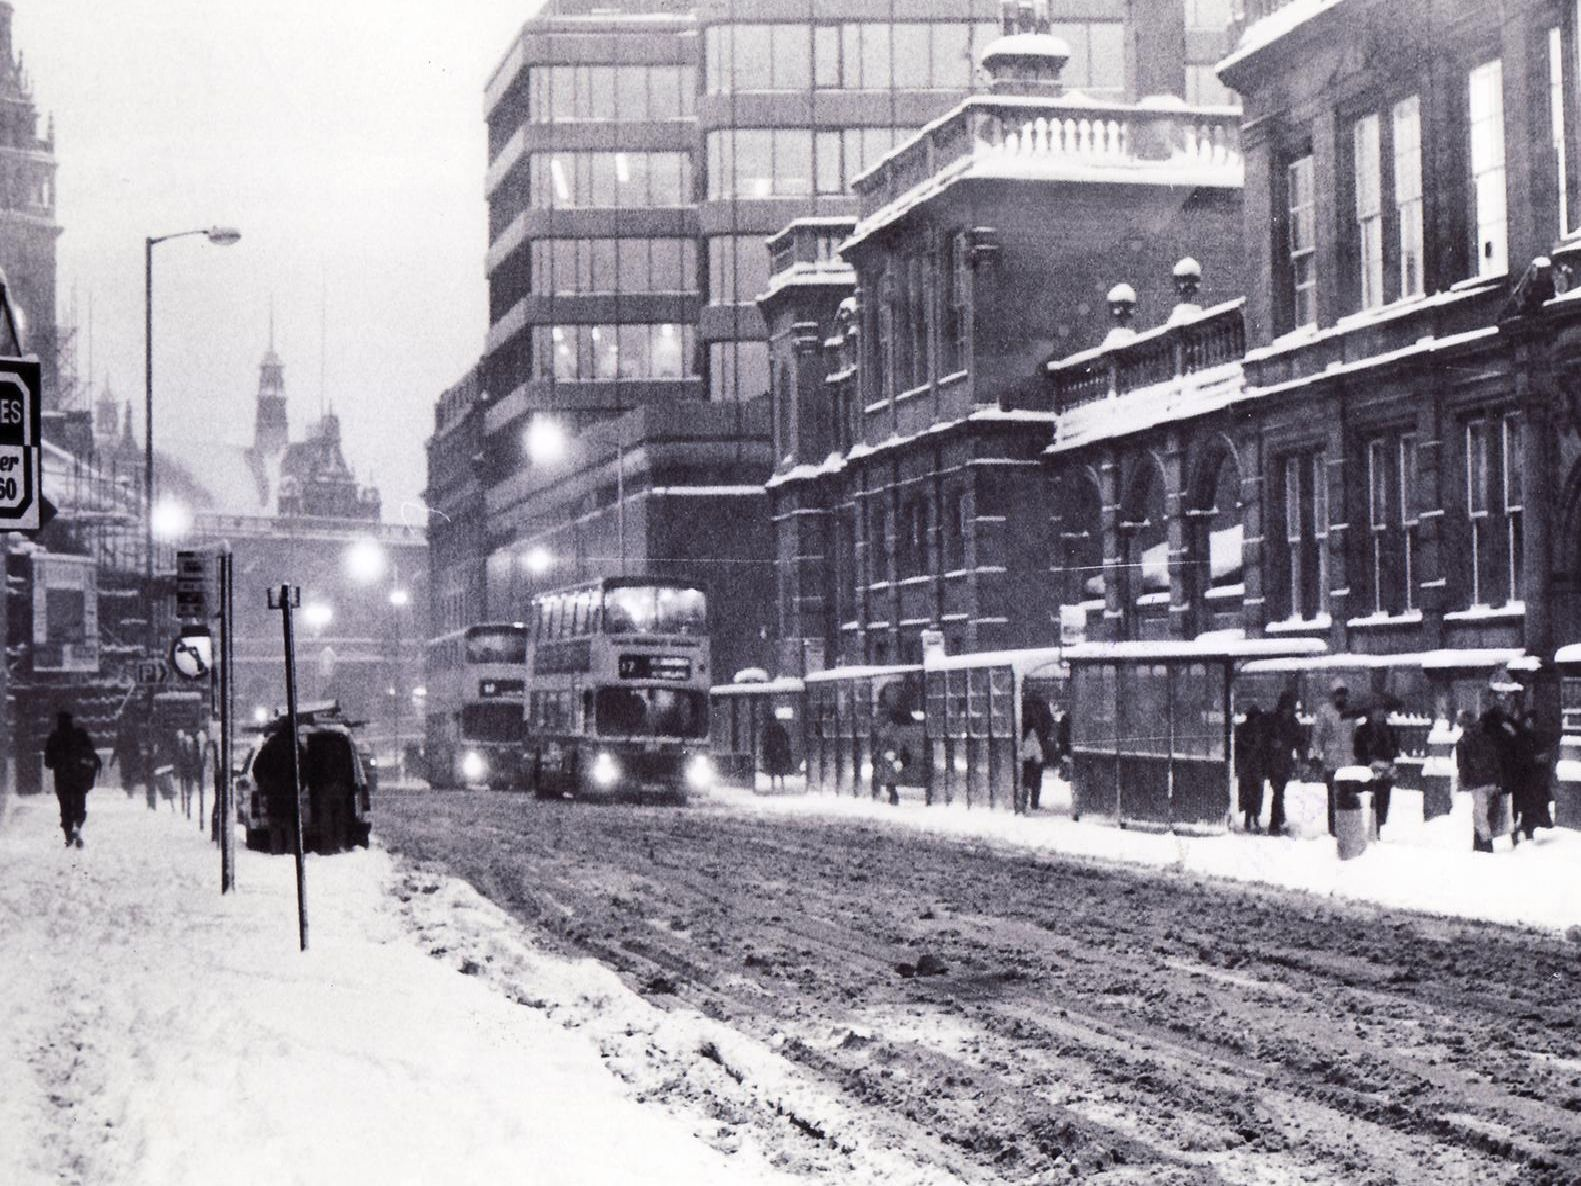 Buses struggle through the snow and slush in Leopold Street in 1986.